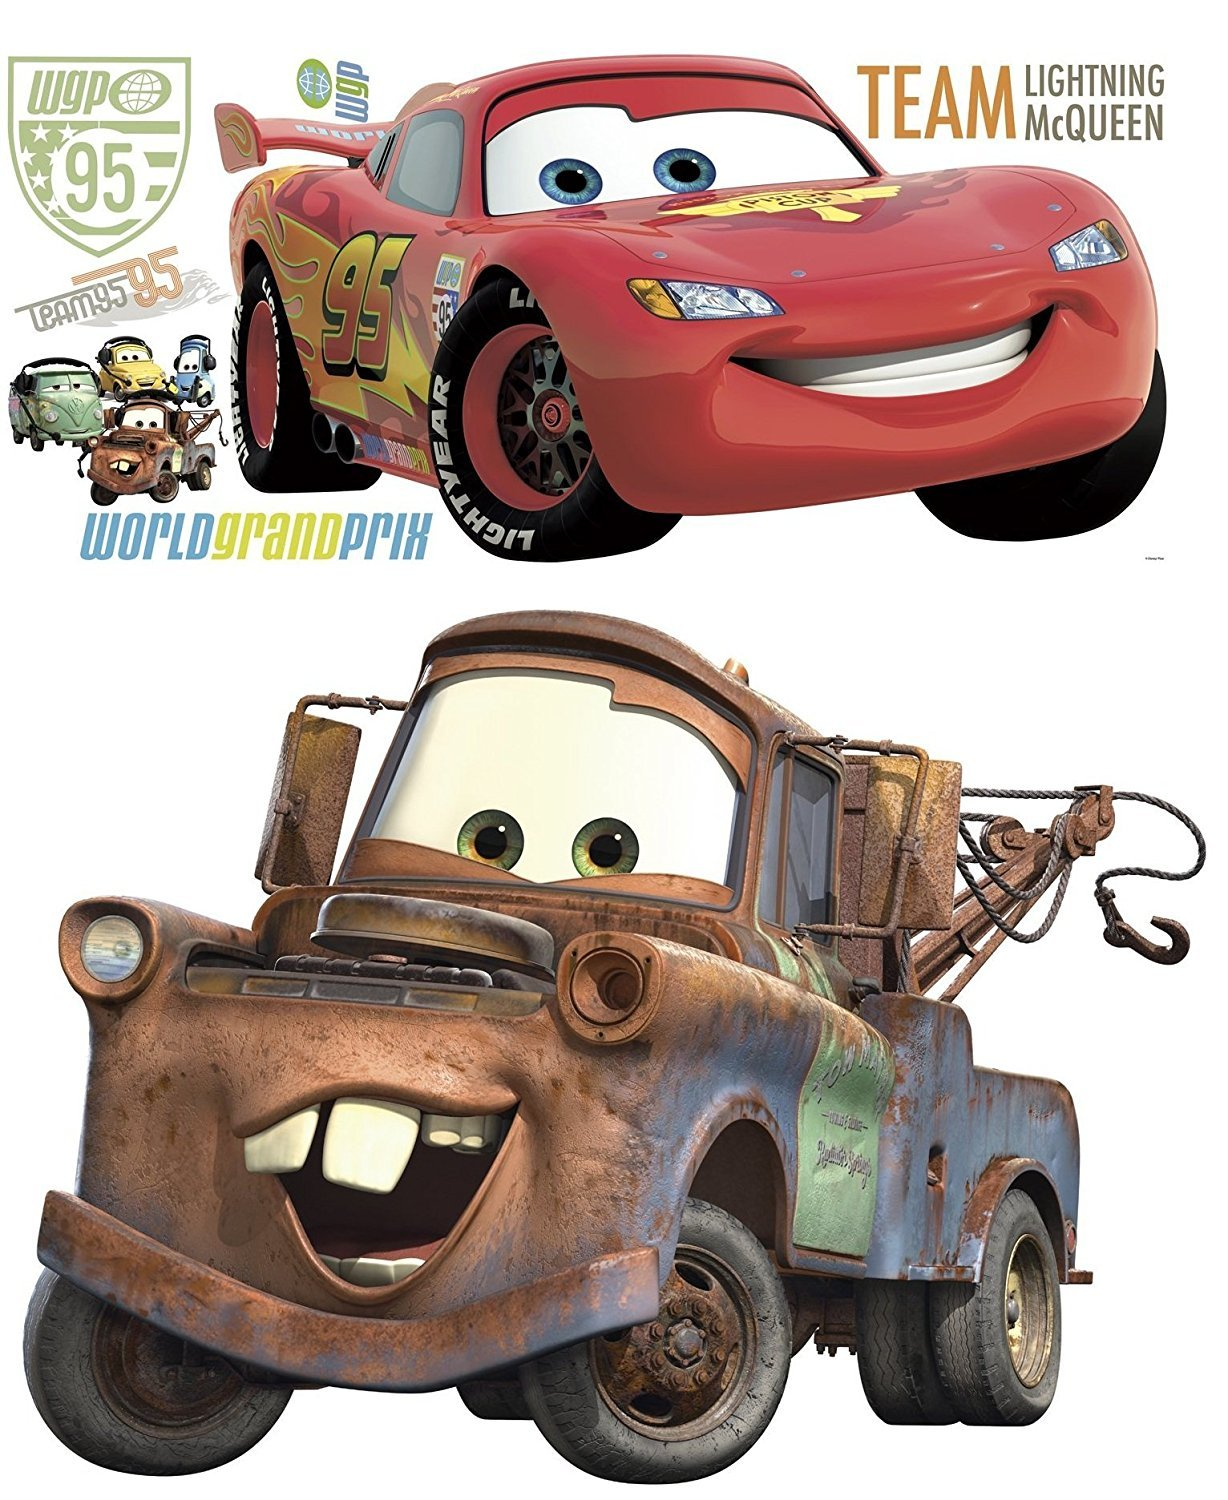 Disney Pixar Cars 2 Lightning McQueen & Mater Peel and Stick Giant Wall Decal Bundle RMK